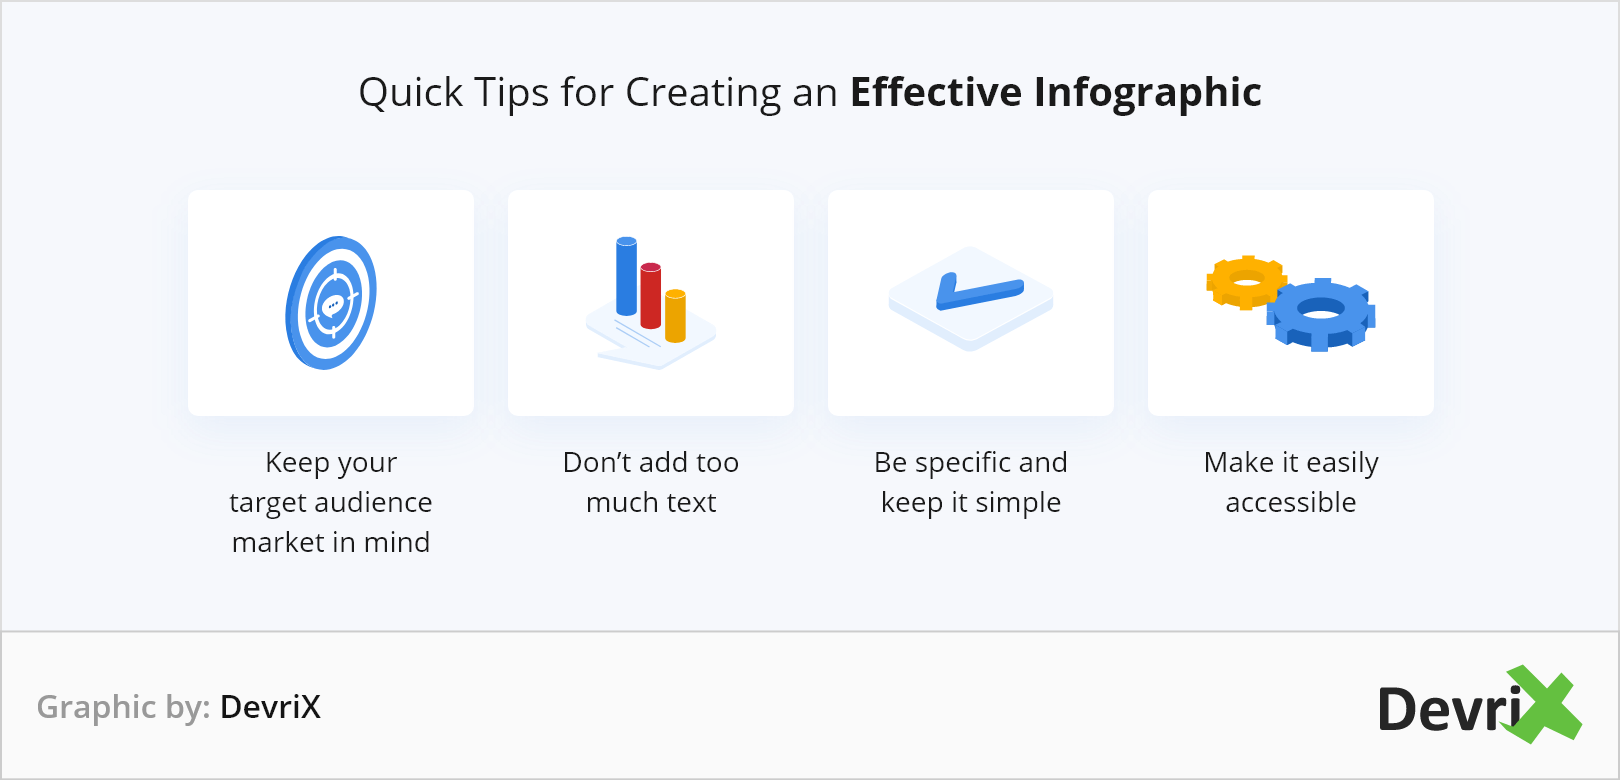 Quick Tips for Creating an Effective Infographic